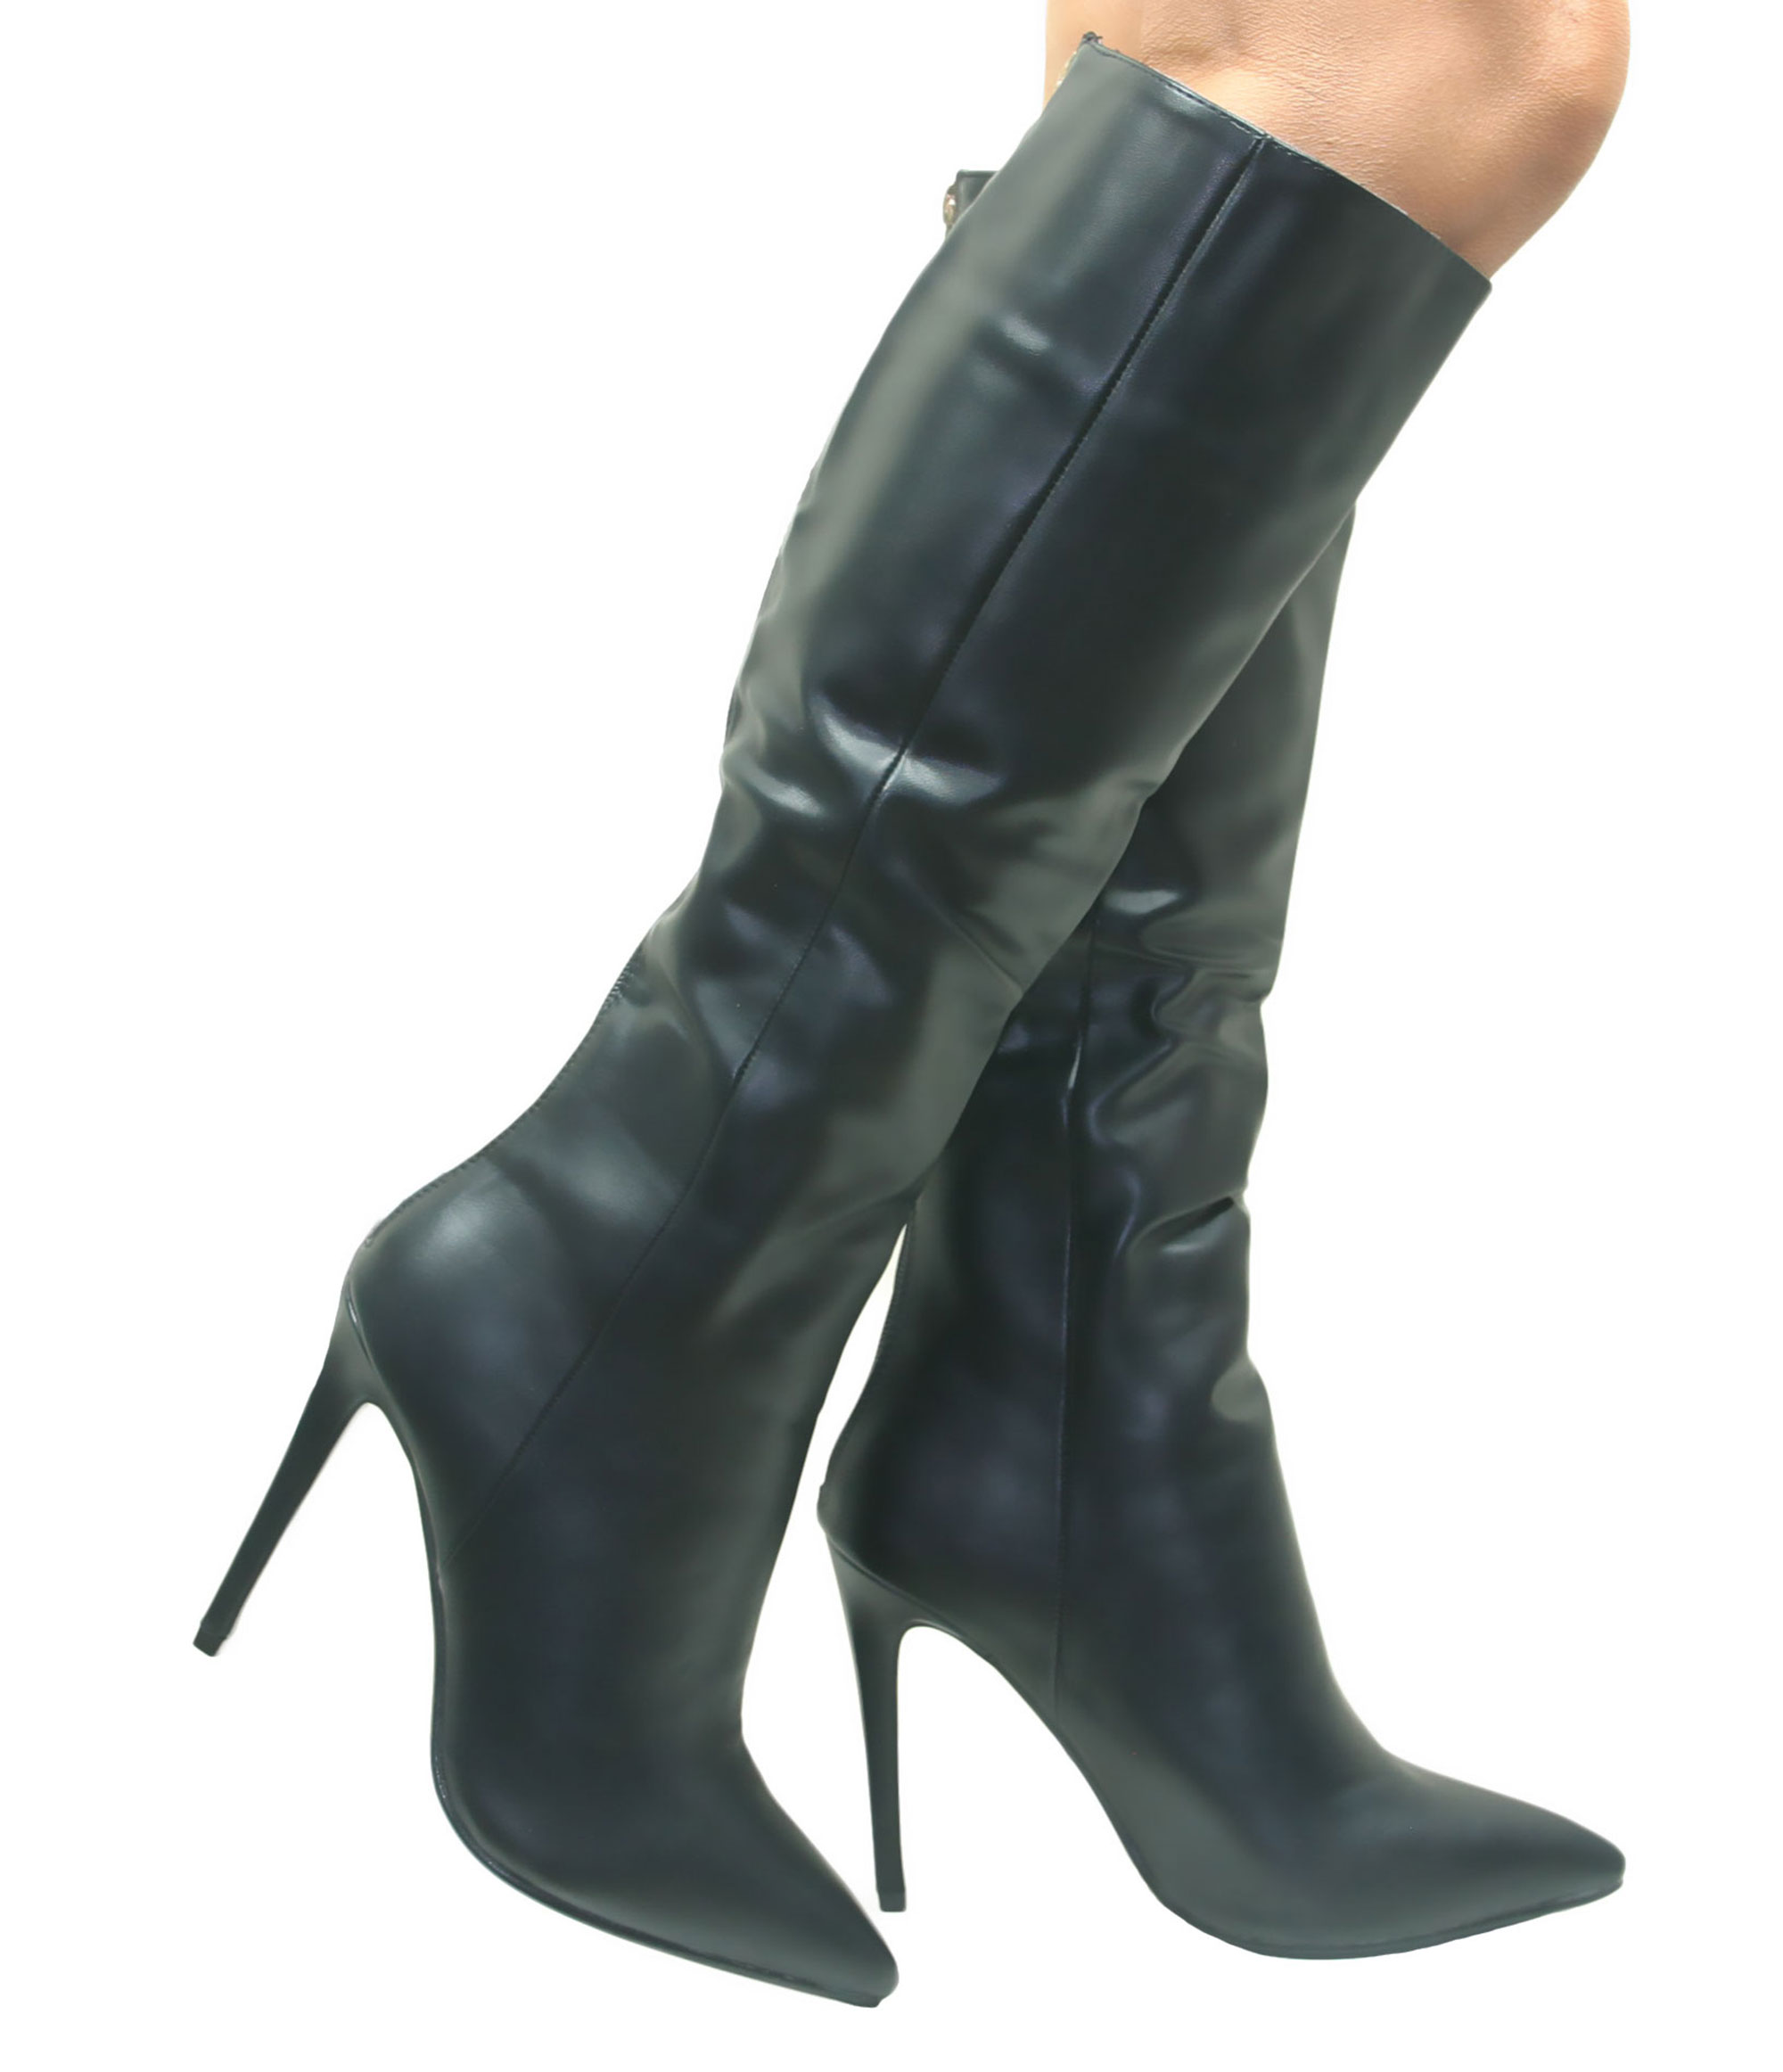 Knee High Black High Heel Boots